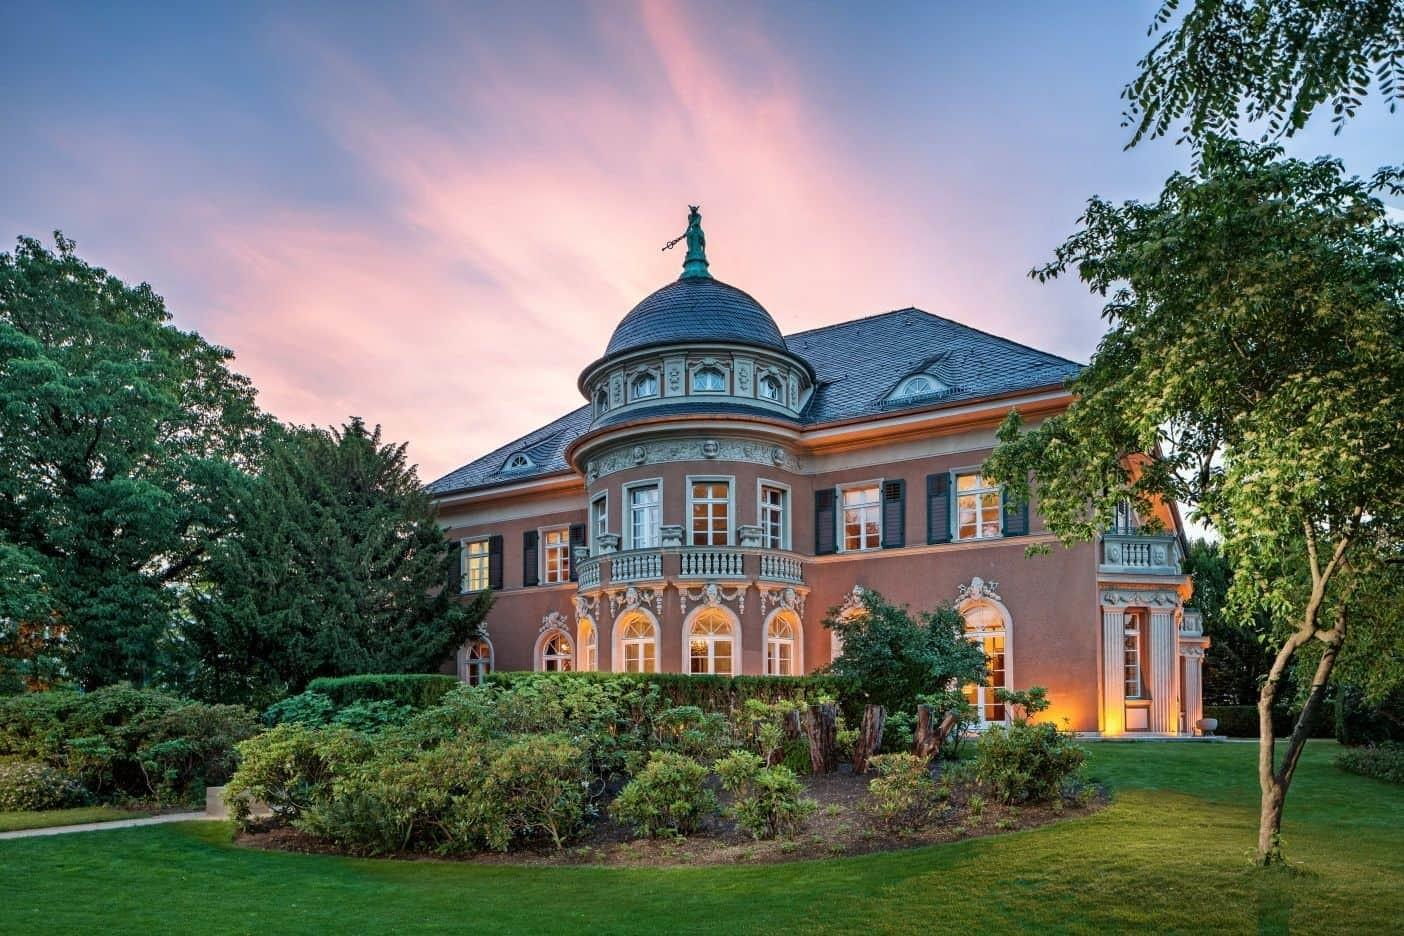 Potsdam Historic Villa Kampffmeyer Now Sale